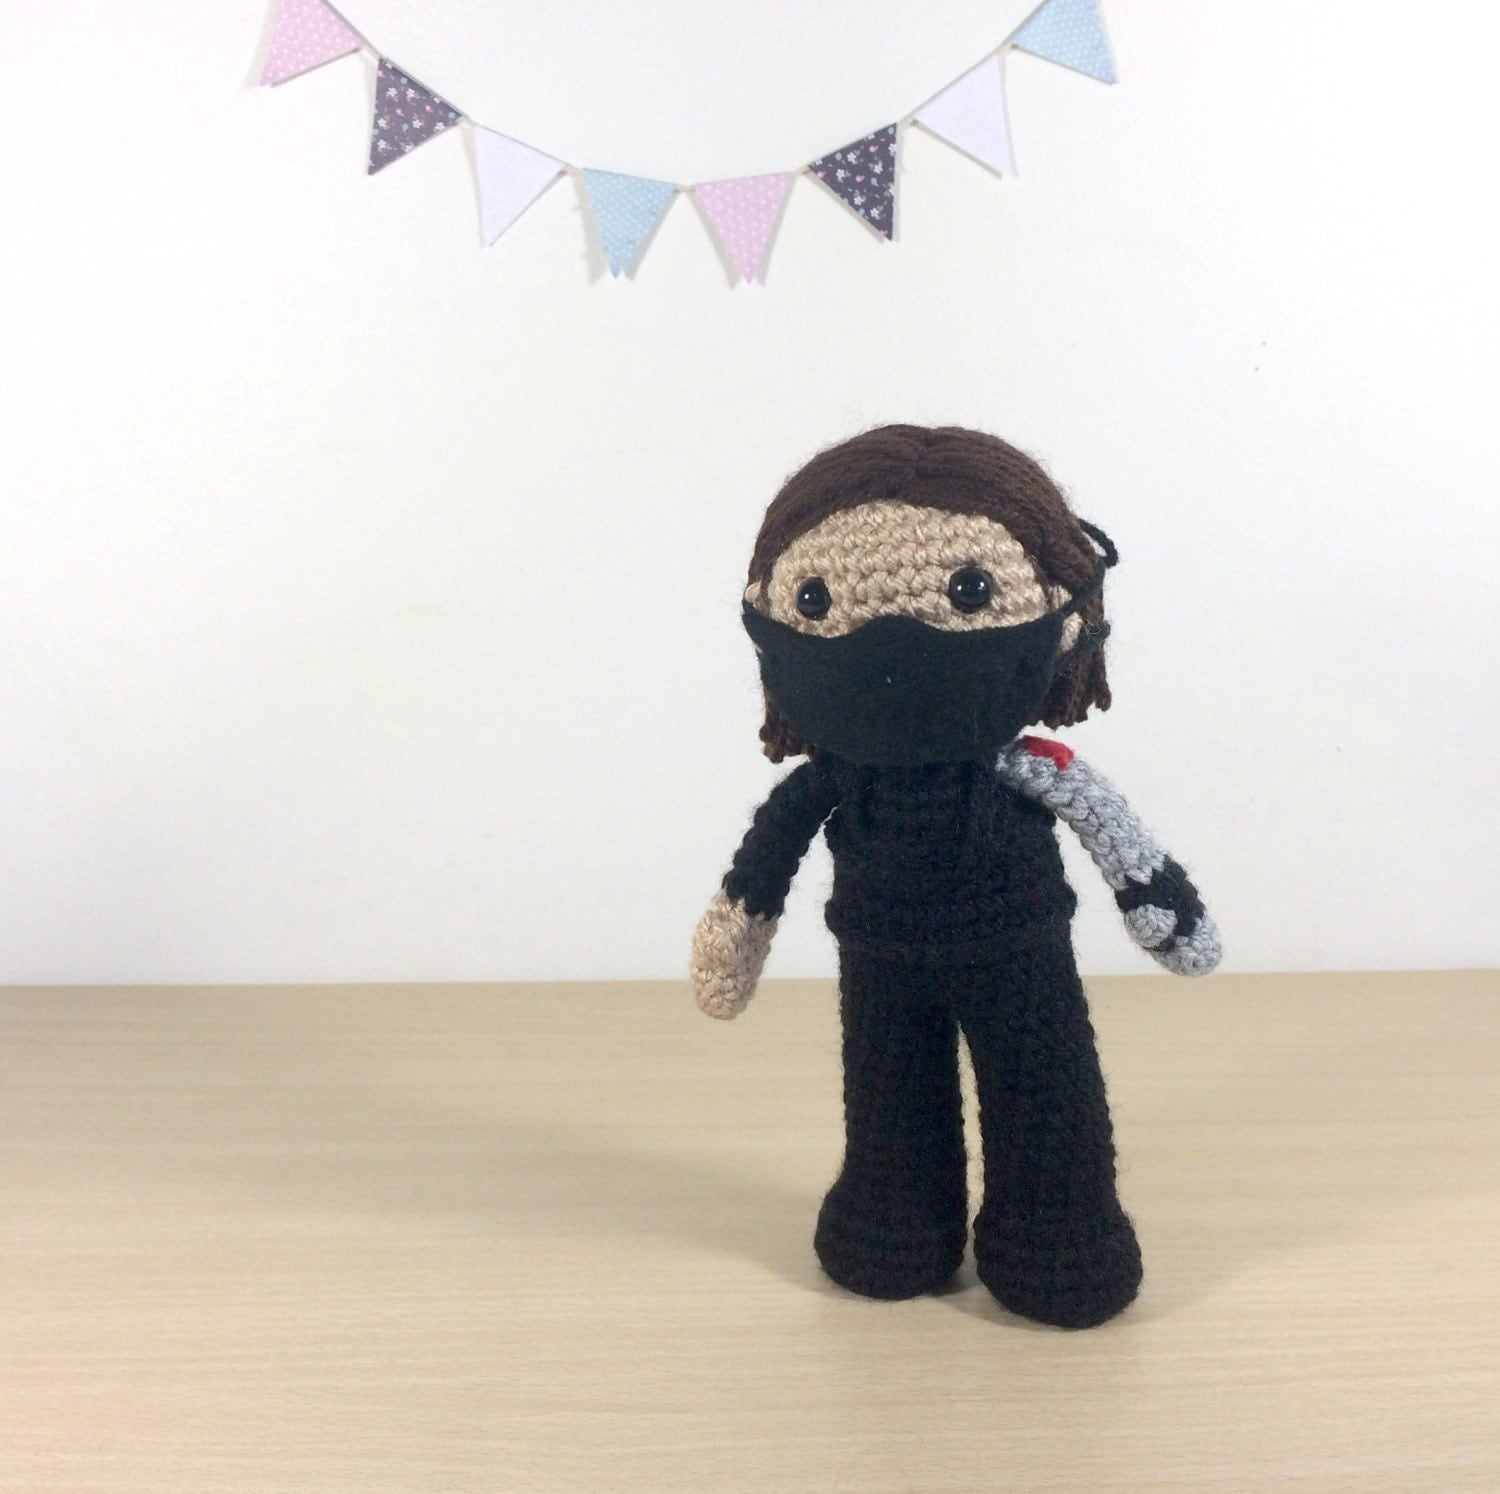 The Winter Soldier Amigurumi Crochet Plush Doll